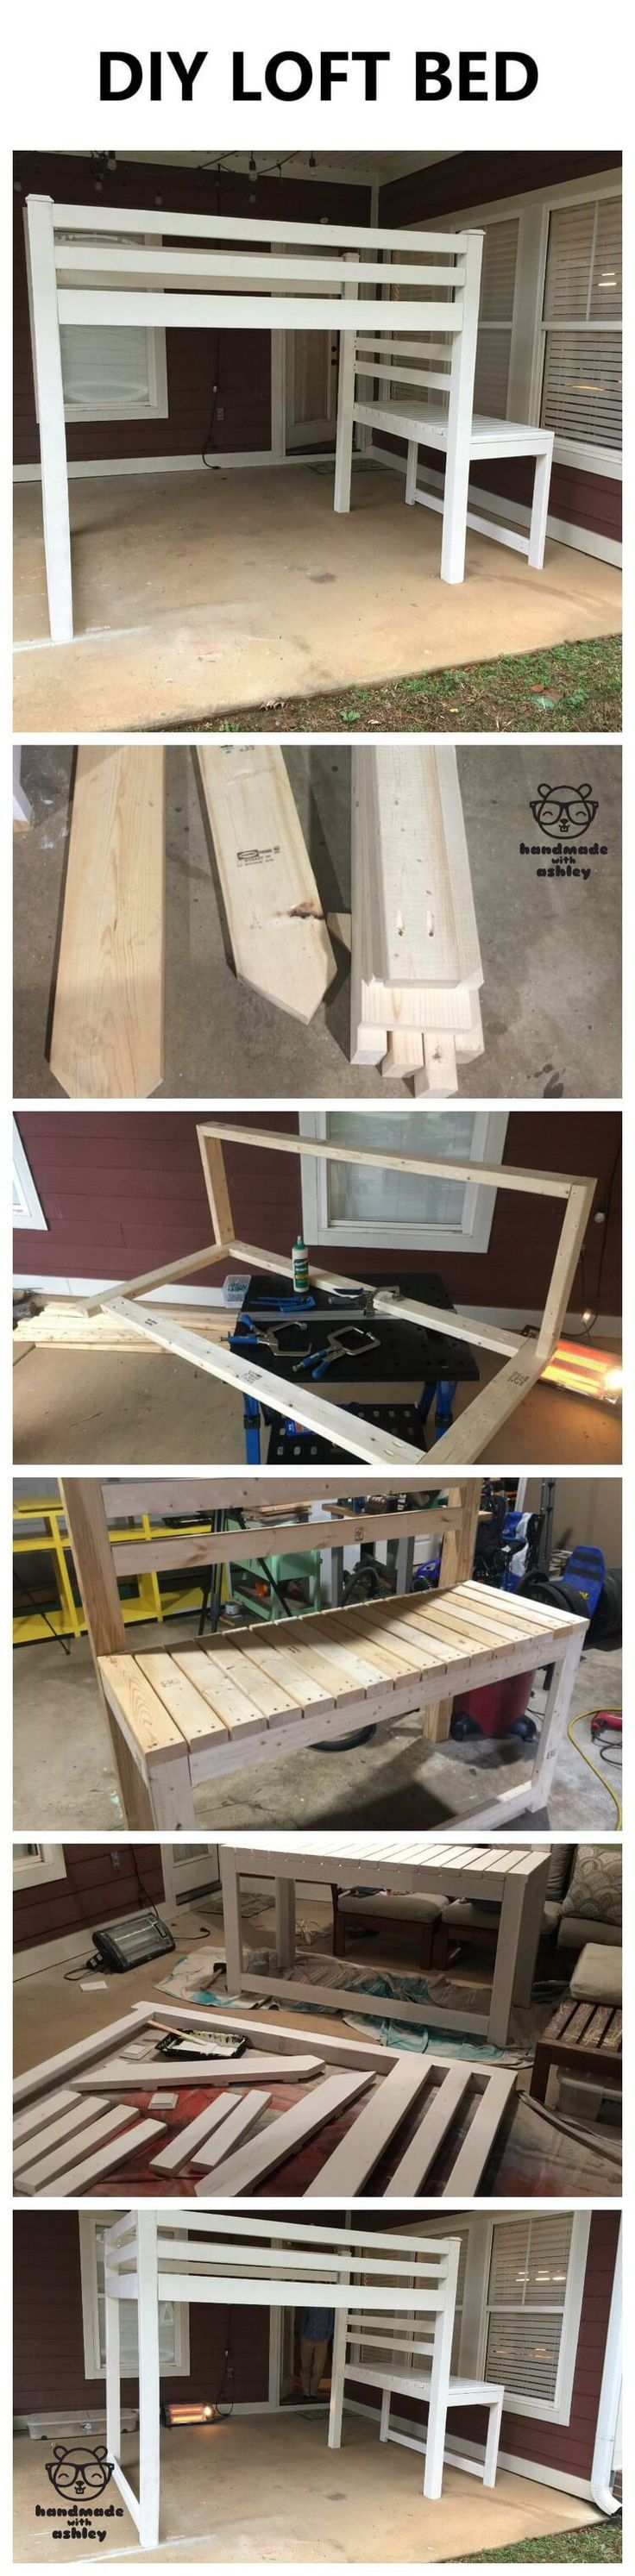 DIY Junior Loft Bed | Free Woodworking Plans by ANA WHITE